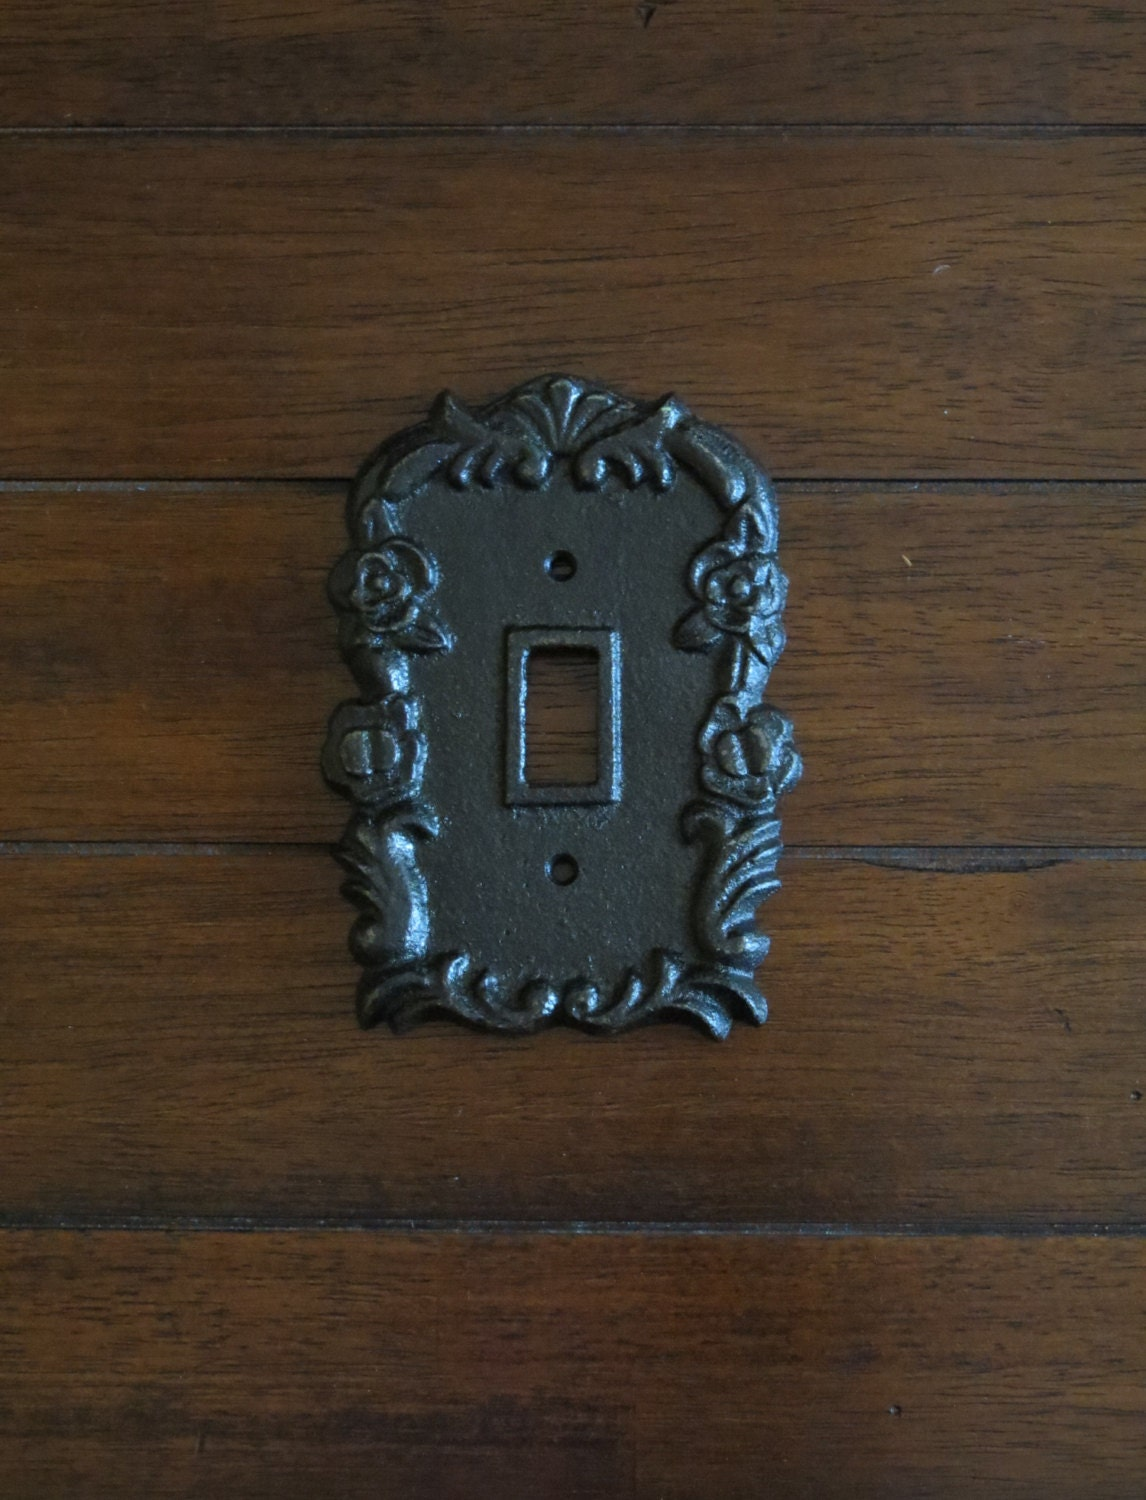 Light switch plate light switch cover cast iron - Wrought iron switch plate covers ...